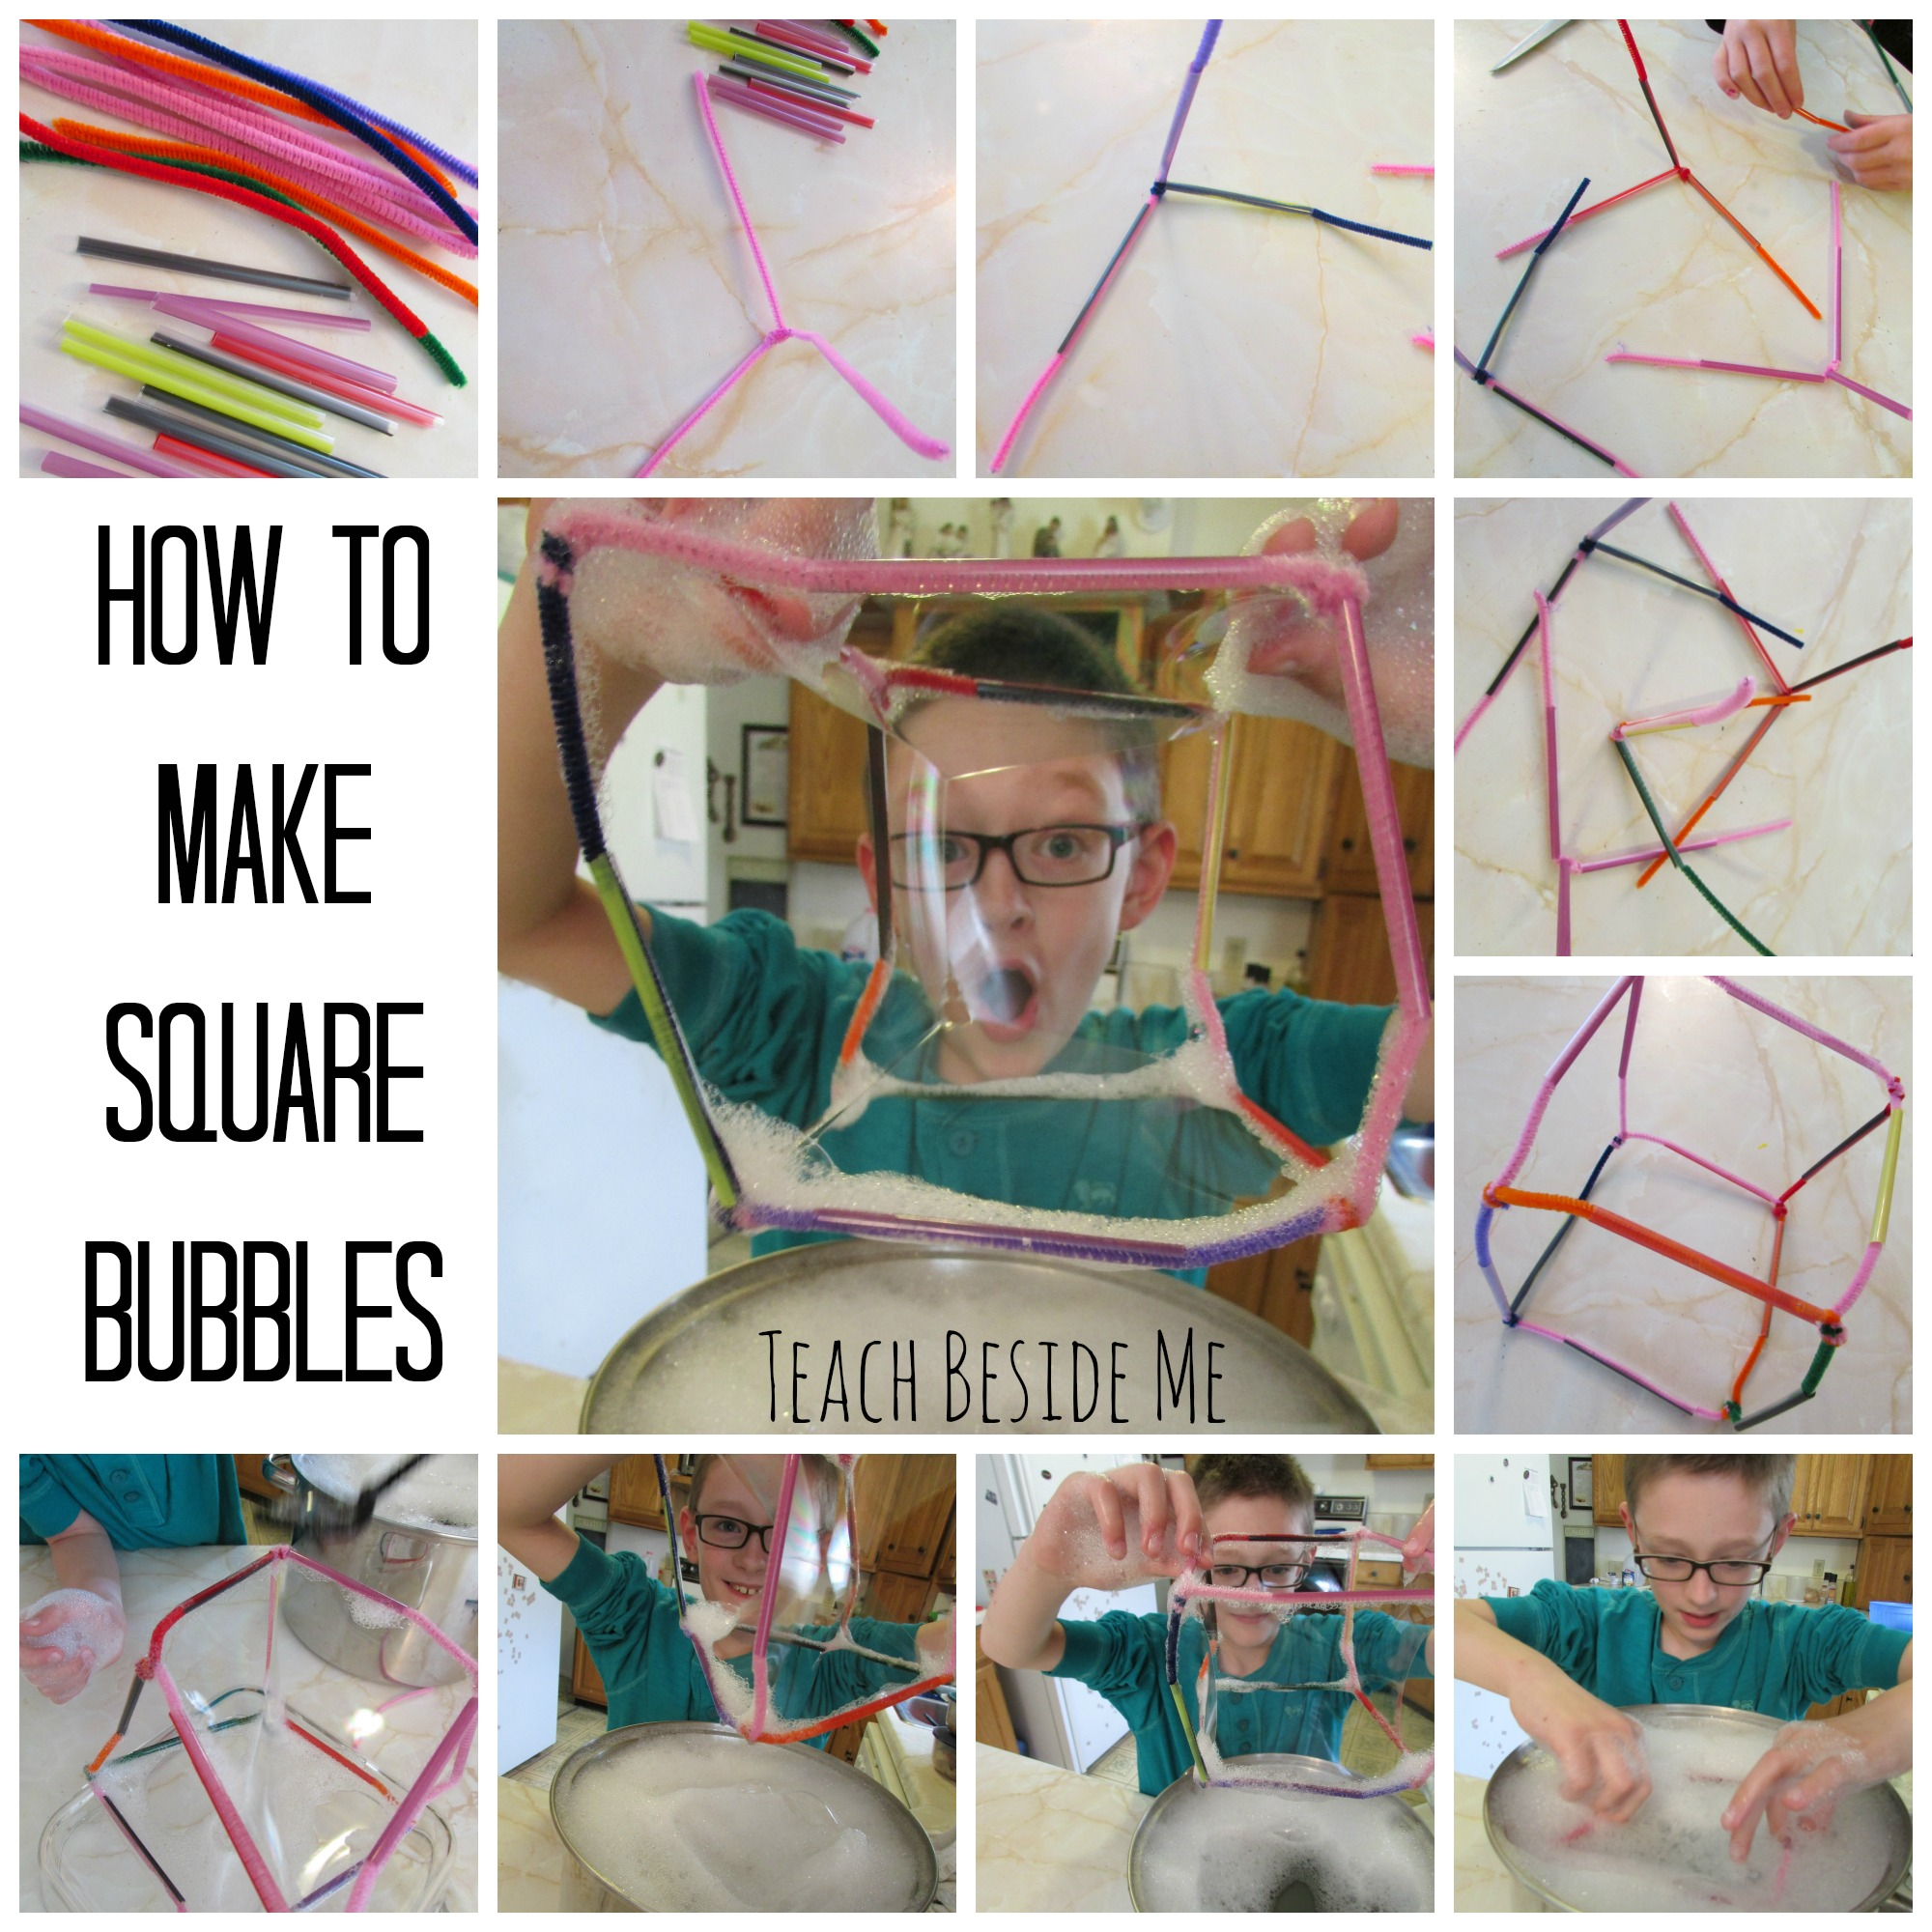 Bubble science square bubbles teach beside me for How to make bubbles liquid at home